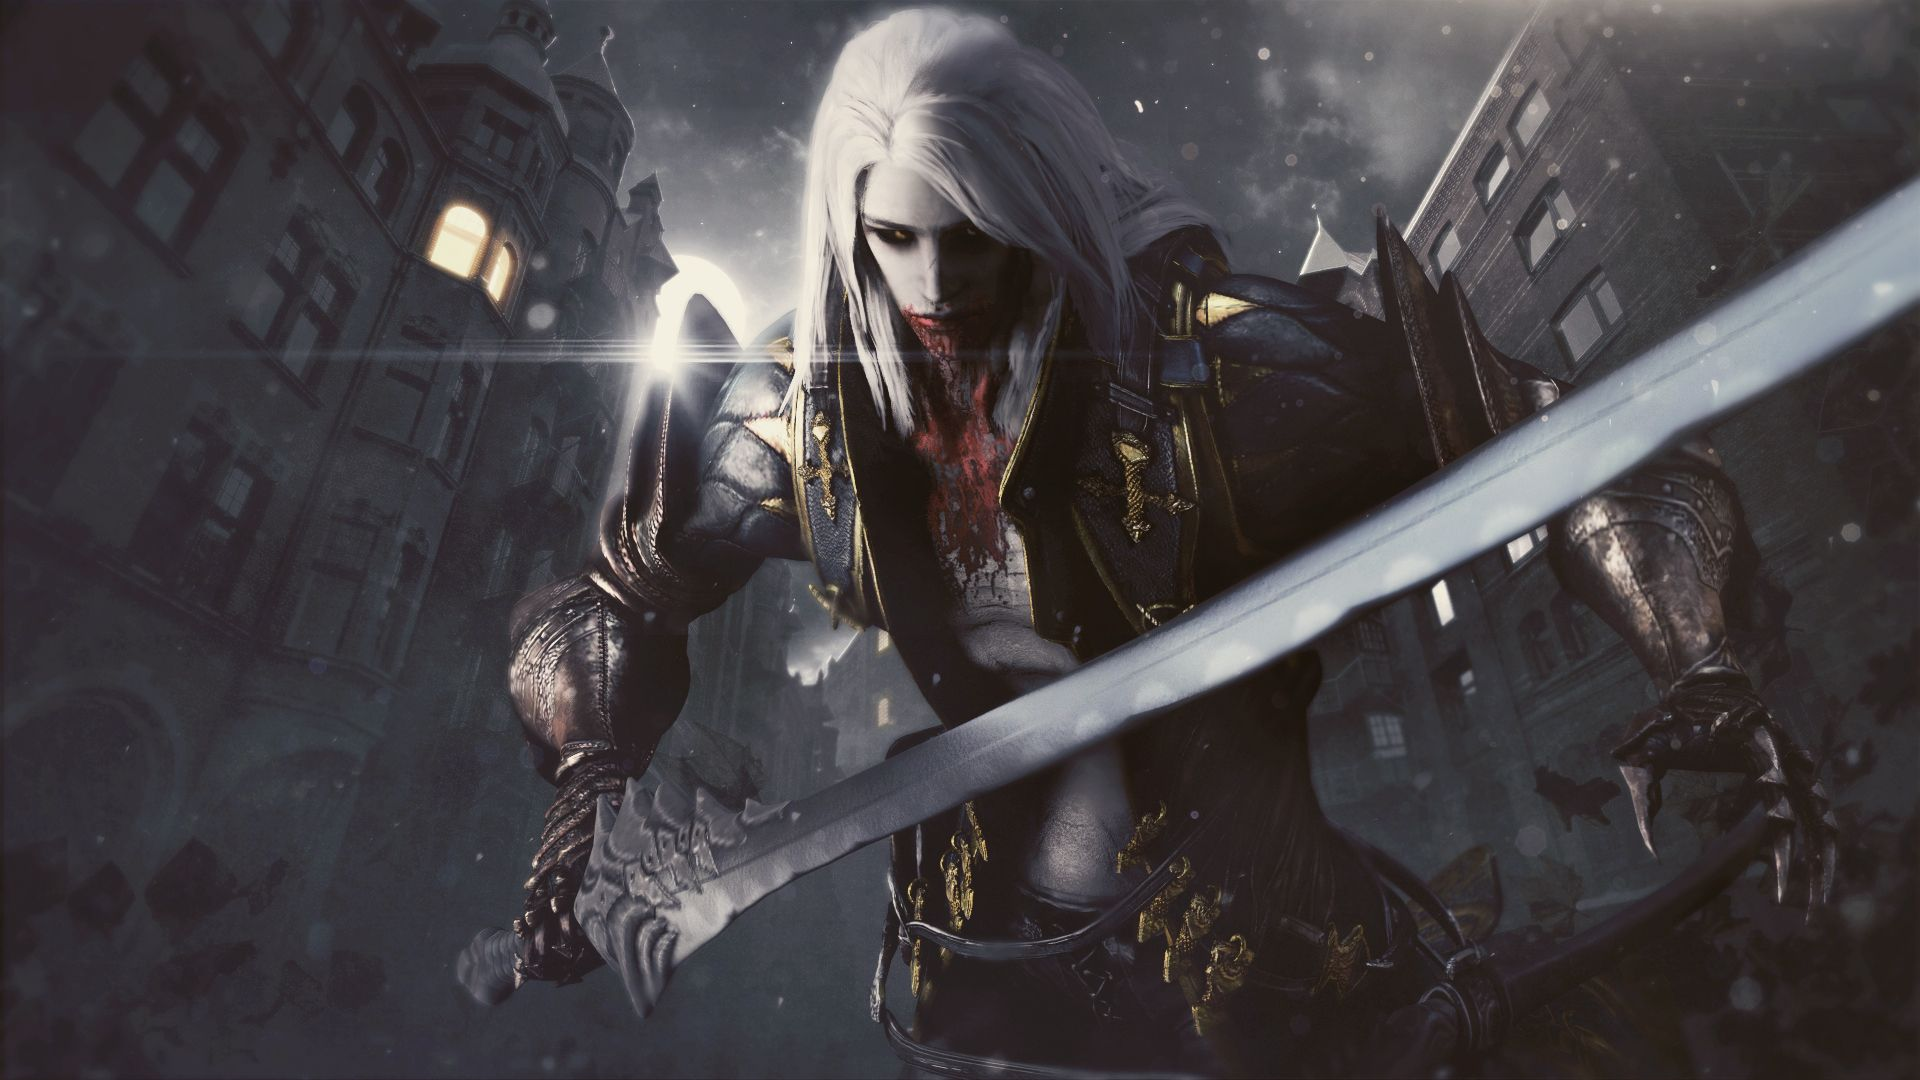 Rule the World Xemnas X Reader  Oneshot by SoloCrimson